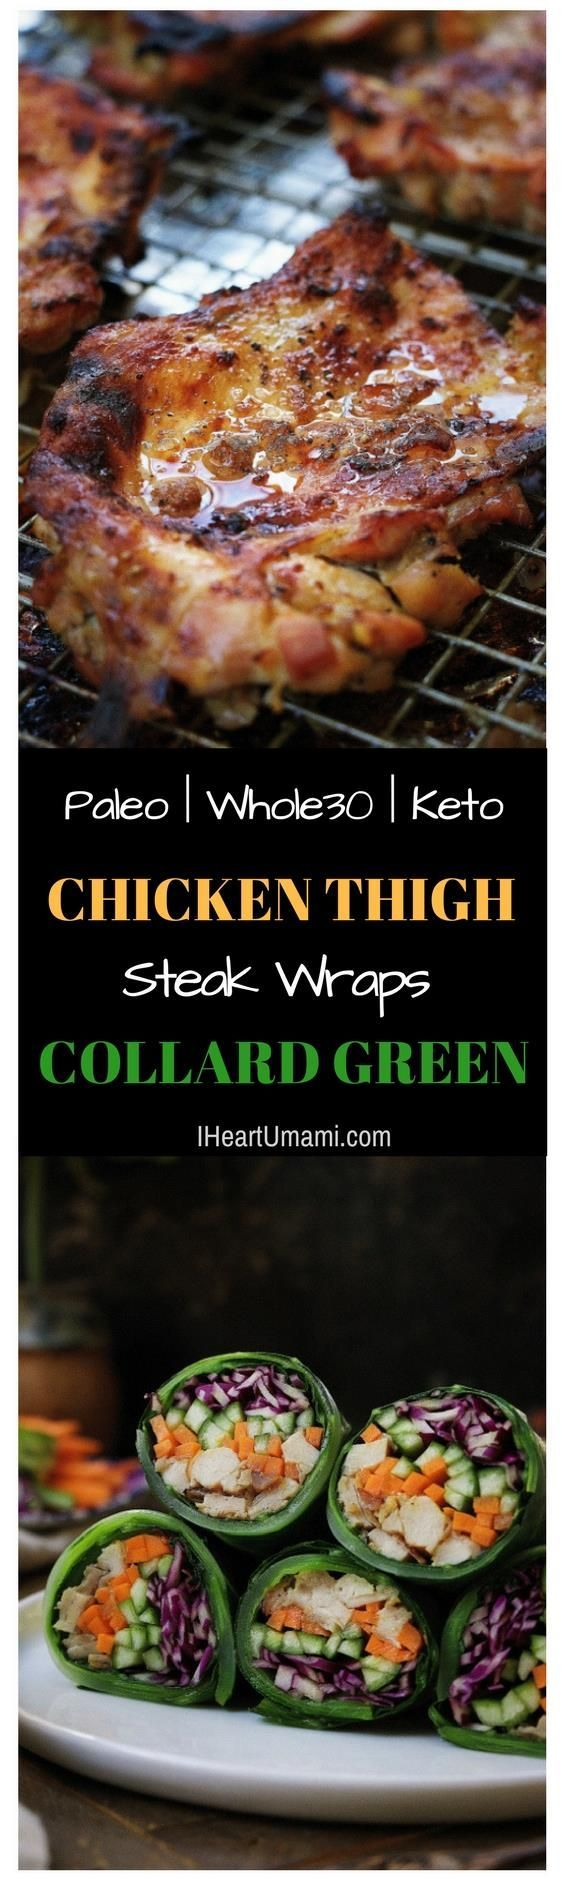 Paleo Chicken Thigh Steak Collard Green Wraps: oven baked boneless chicken thigh steak infused with roasted garlic clove flavor. Serve it alone or turn it into wraps for a delicious low carb chicken collard green wrap. Follow the link for a quick video demo and don't miss this insanely delicious baked chicken recipe !